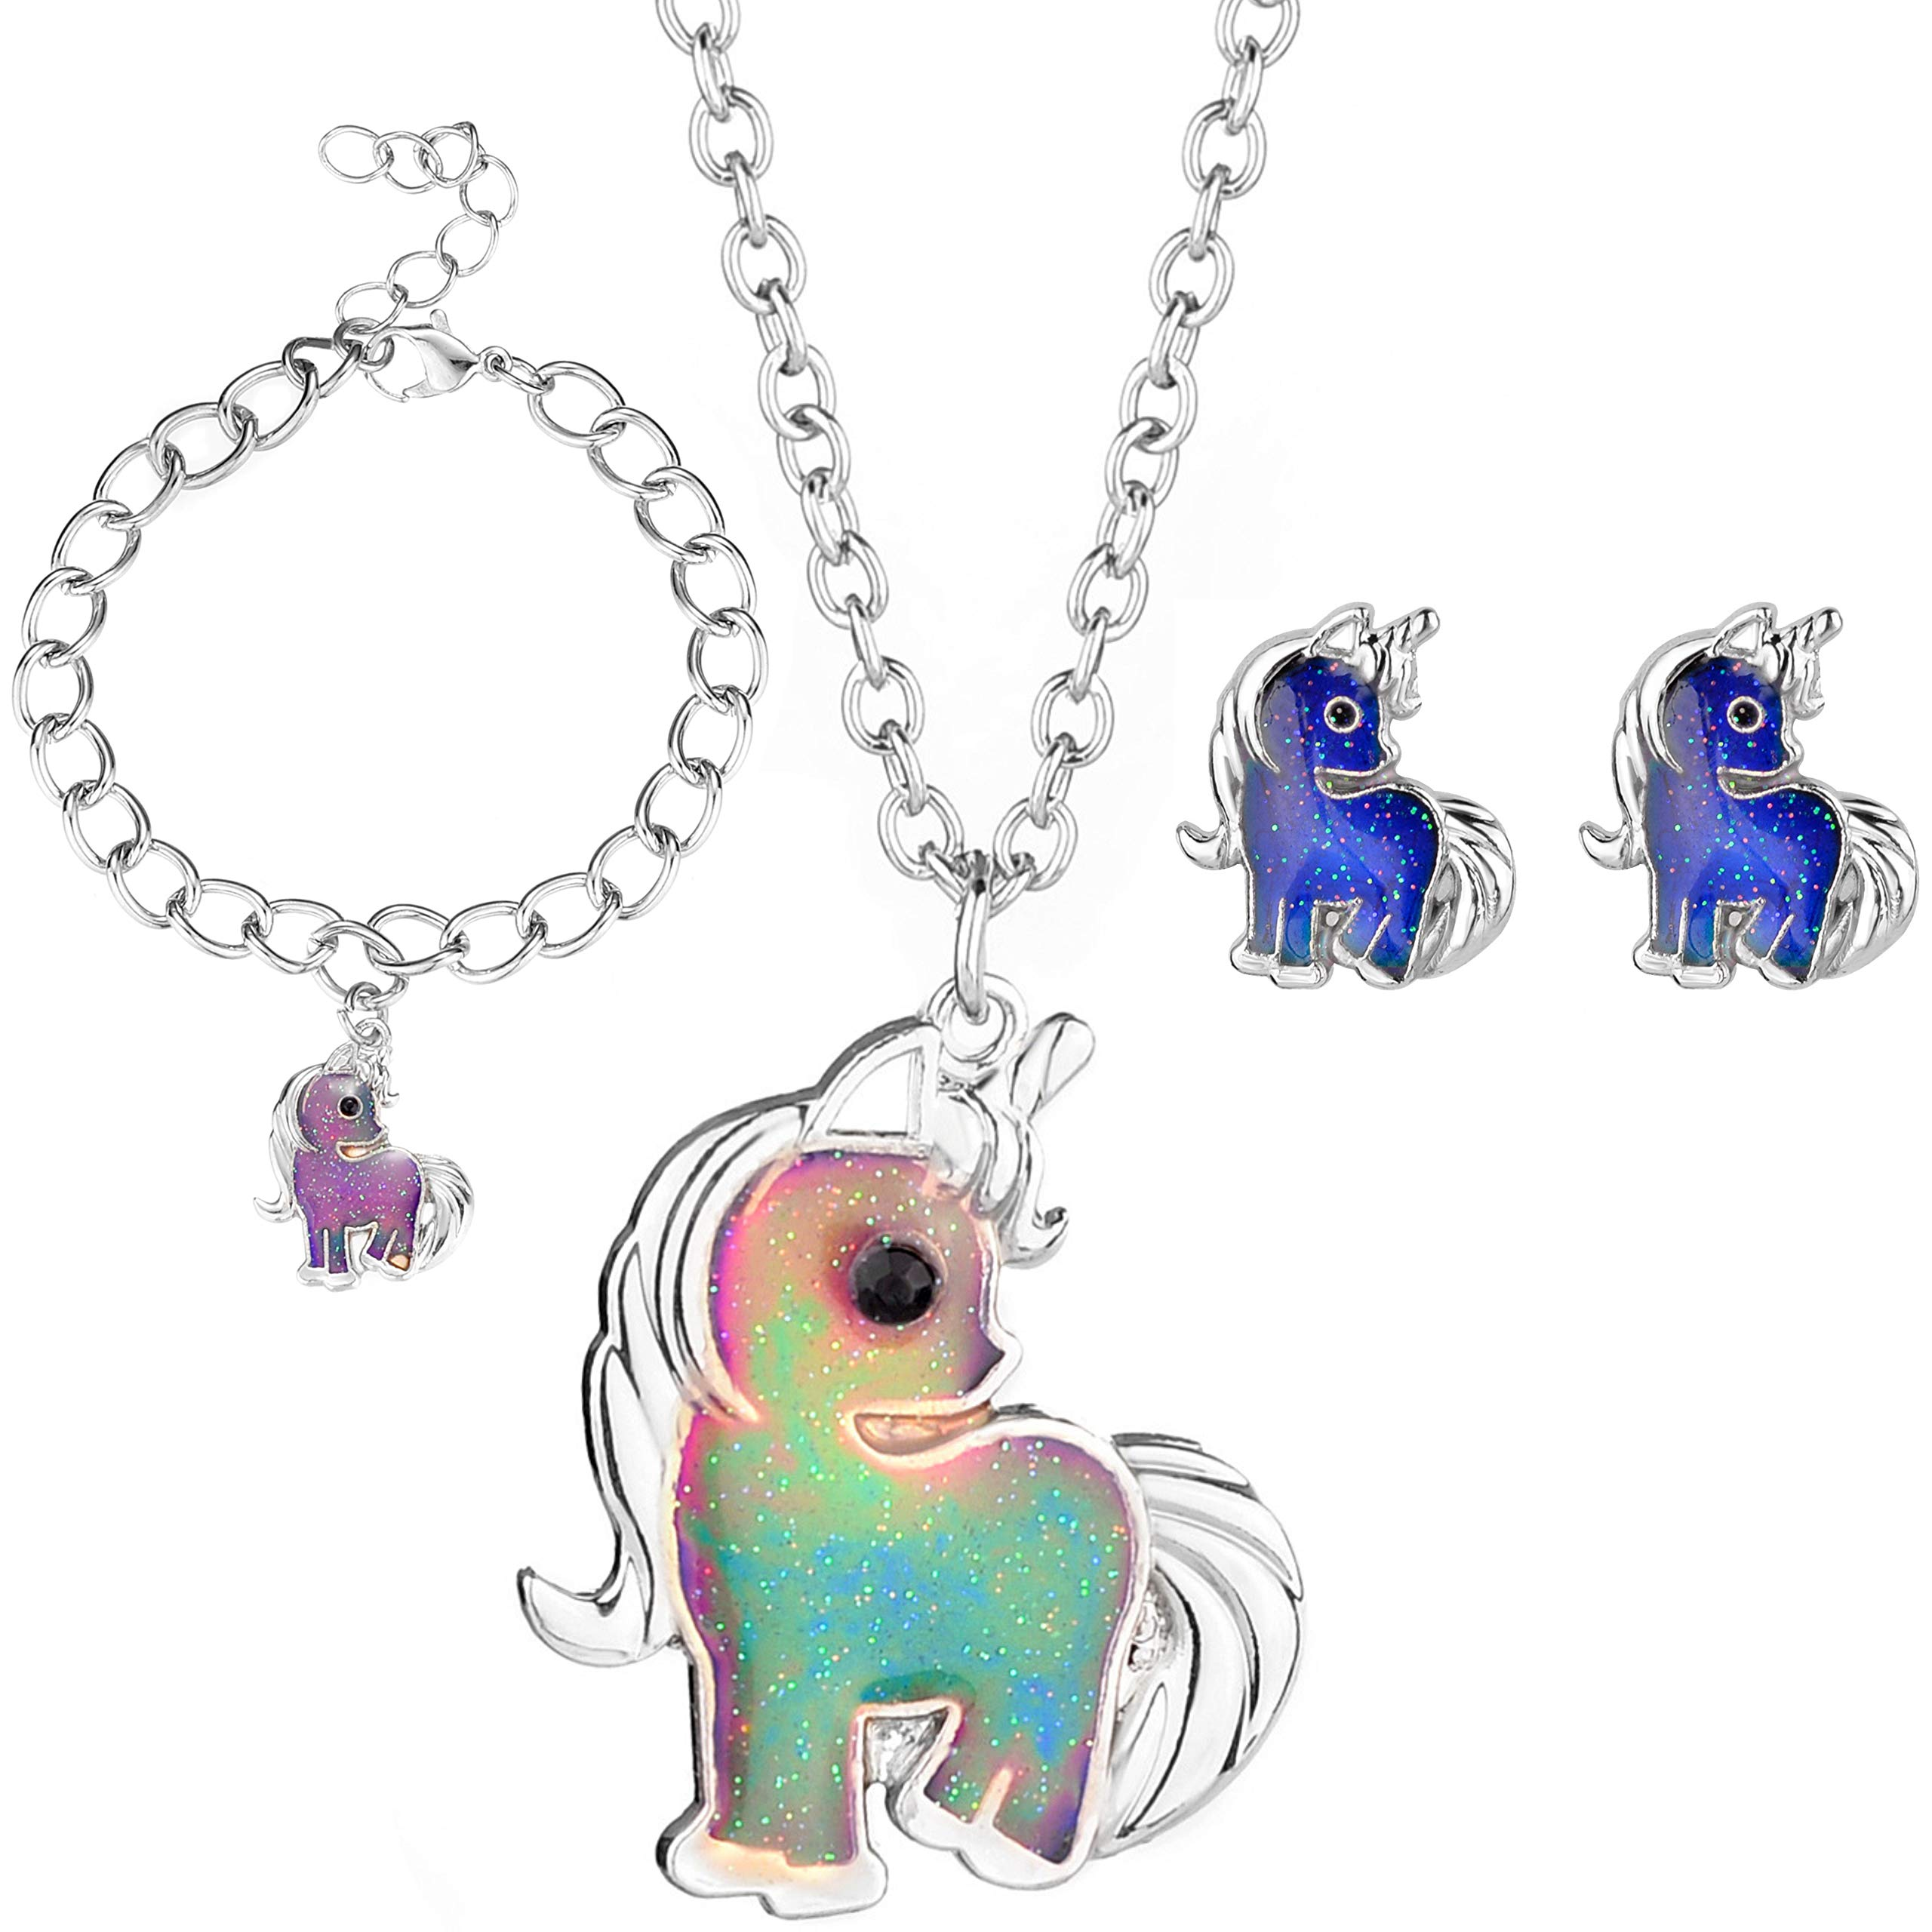 Unicorn Mood Necklace, Mood Bracelet and Mood Earrings Set for Girls - Color Changing Unicorn Kids Jewelry for Little Girls, Kids and Tween - Great Party Favors and Stocking Stuffers for Girls by FROG SAC